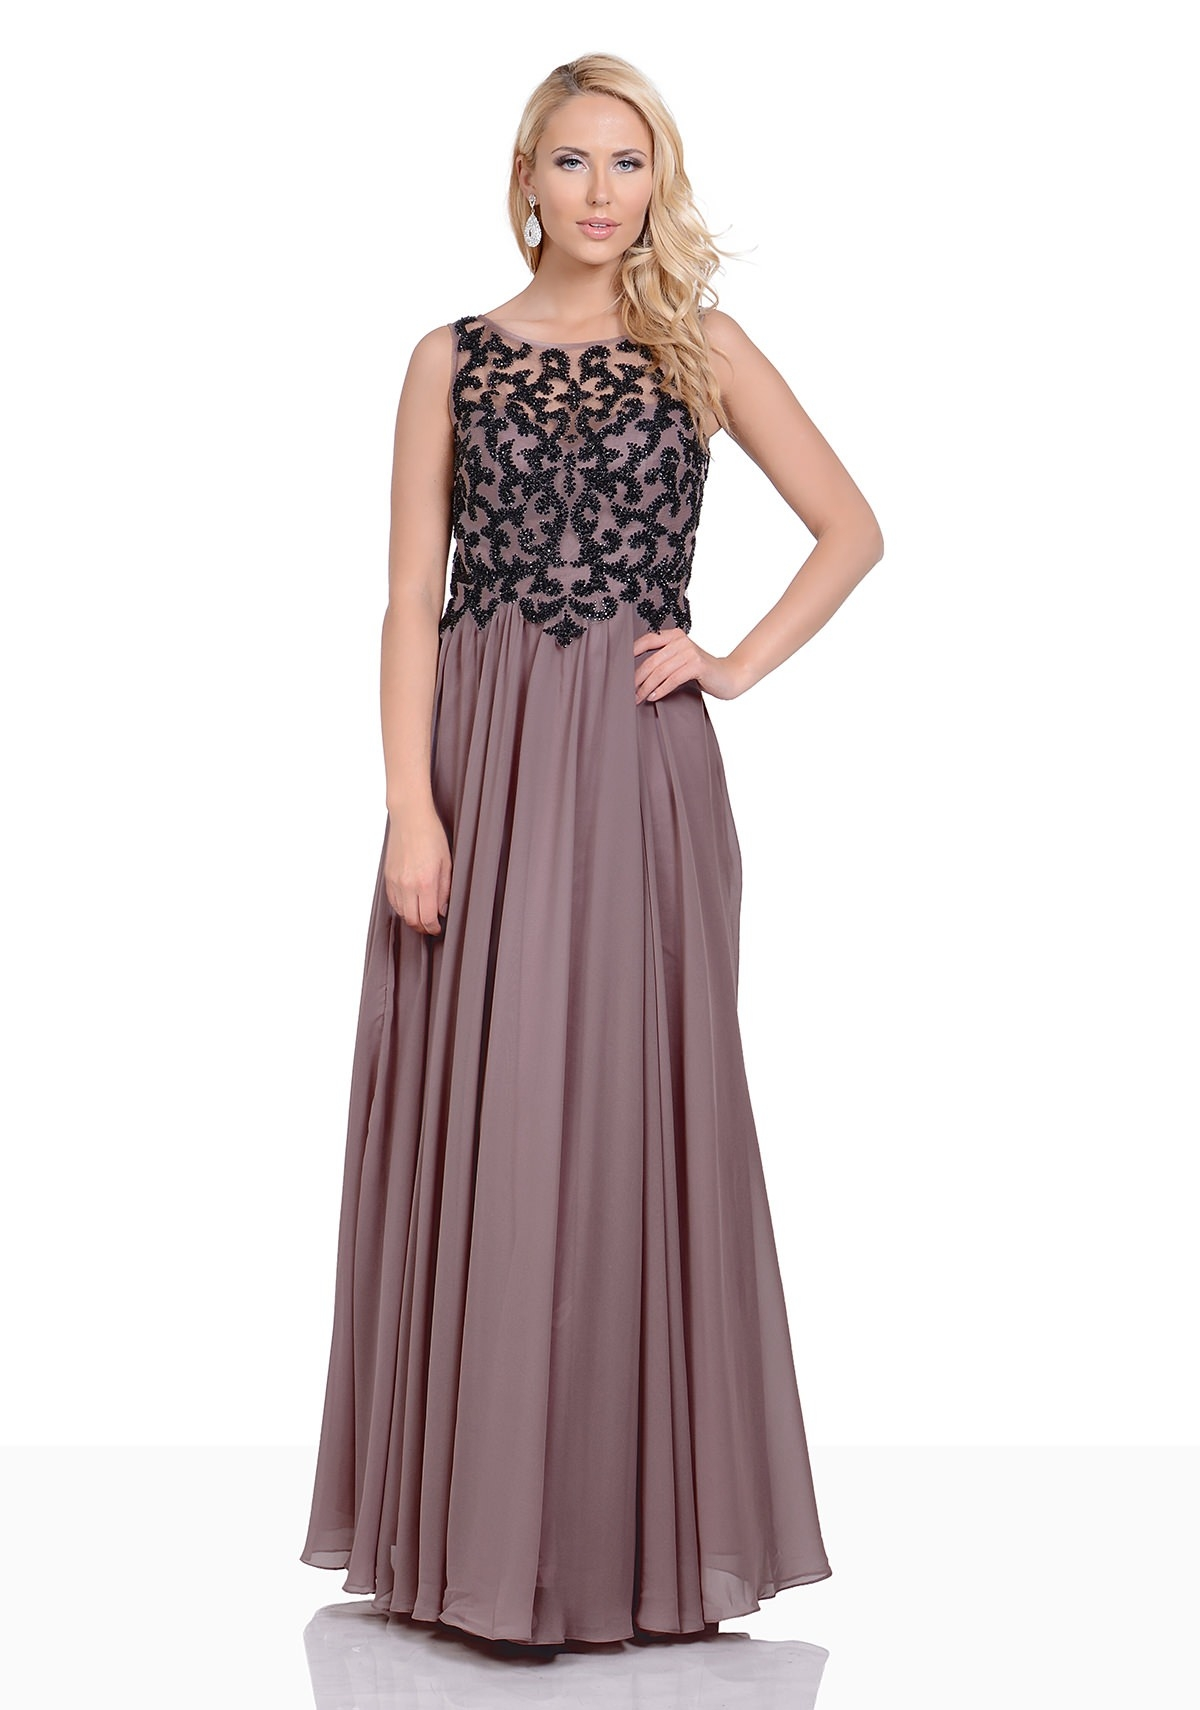 15 Coolste Abendkleid Taupe Boutique10 Schön Abendkleid Taupe Design